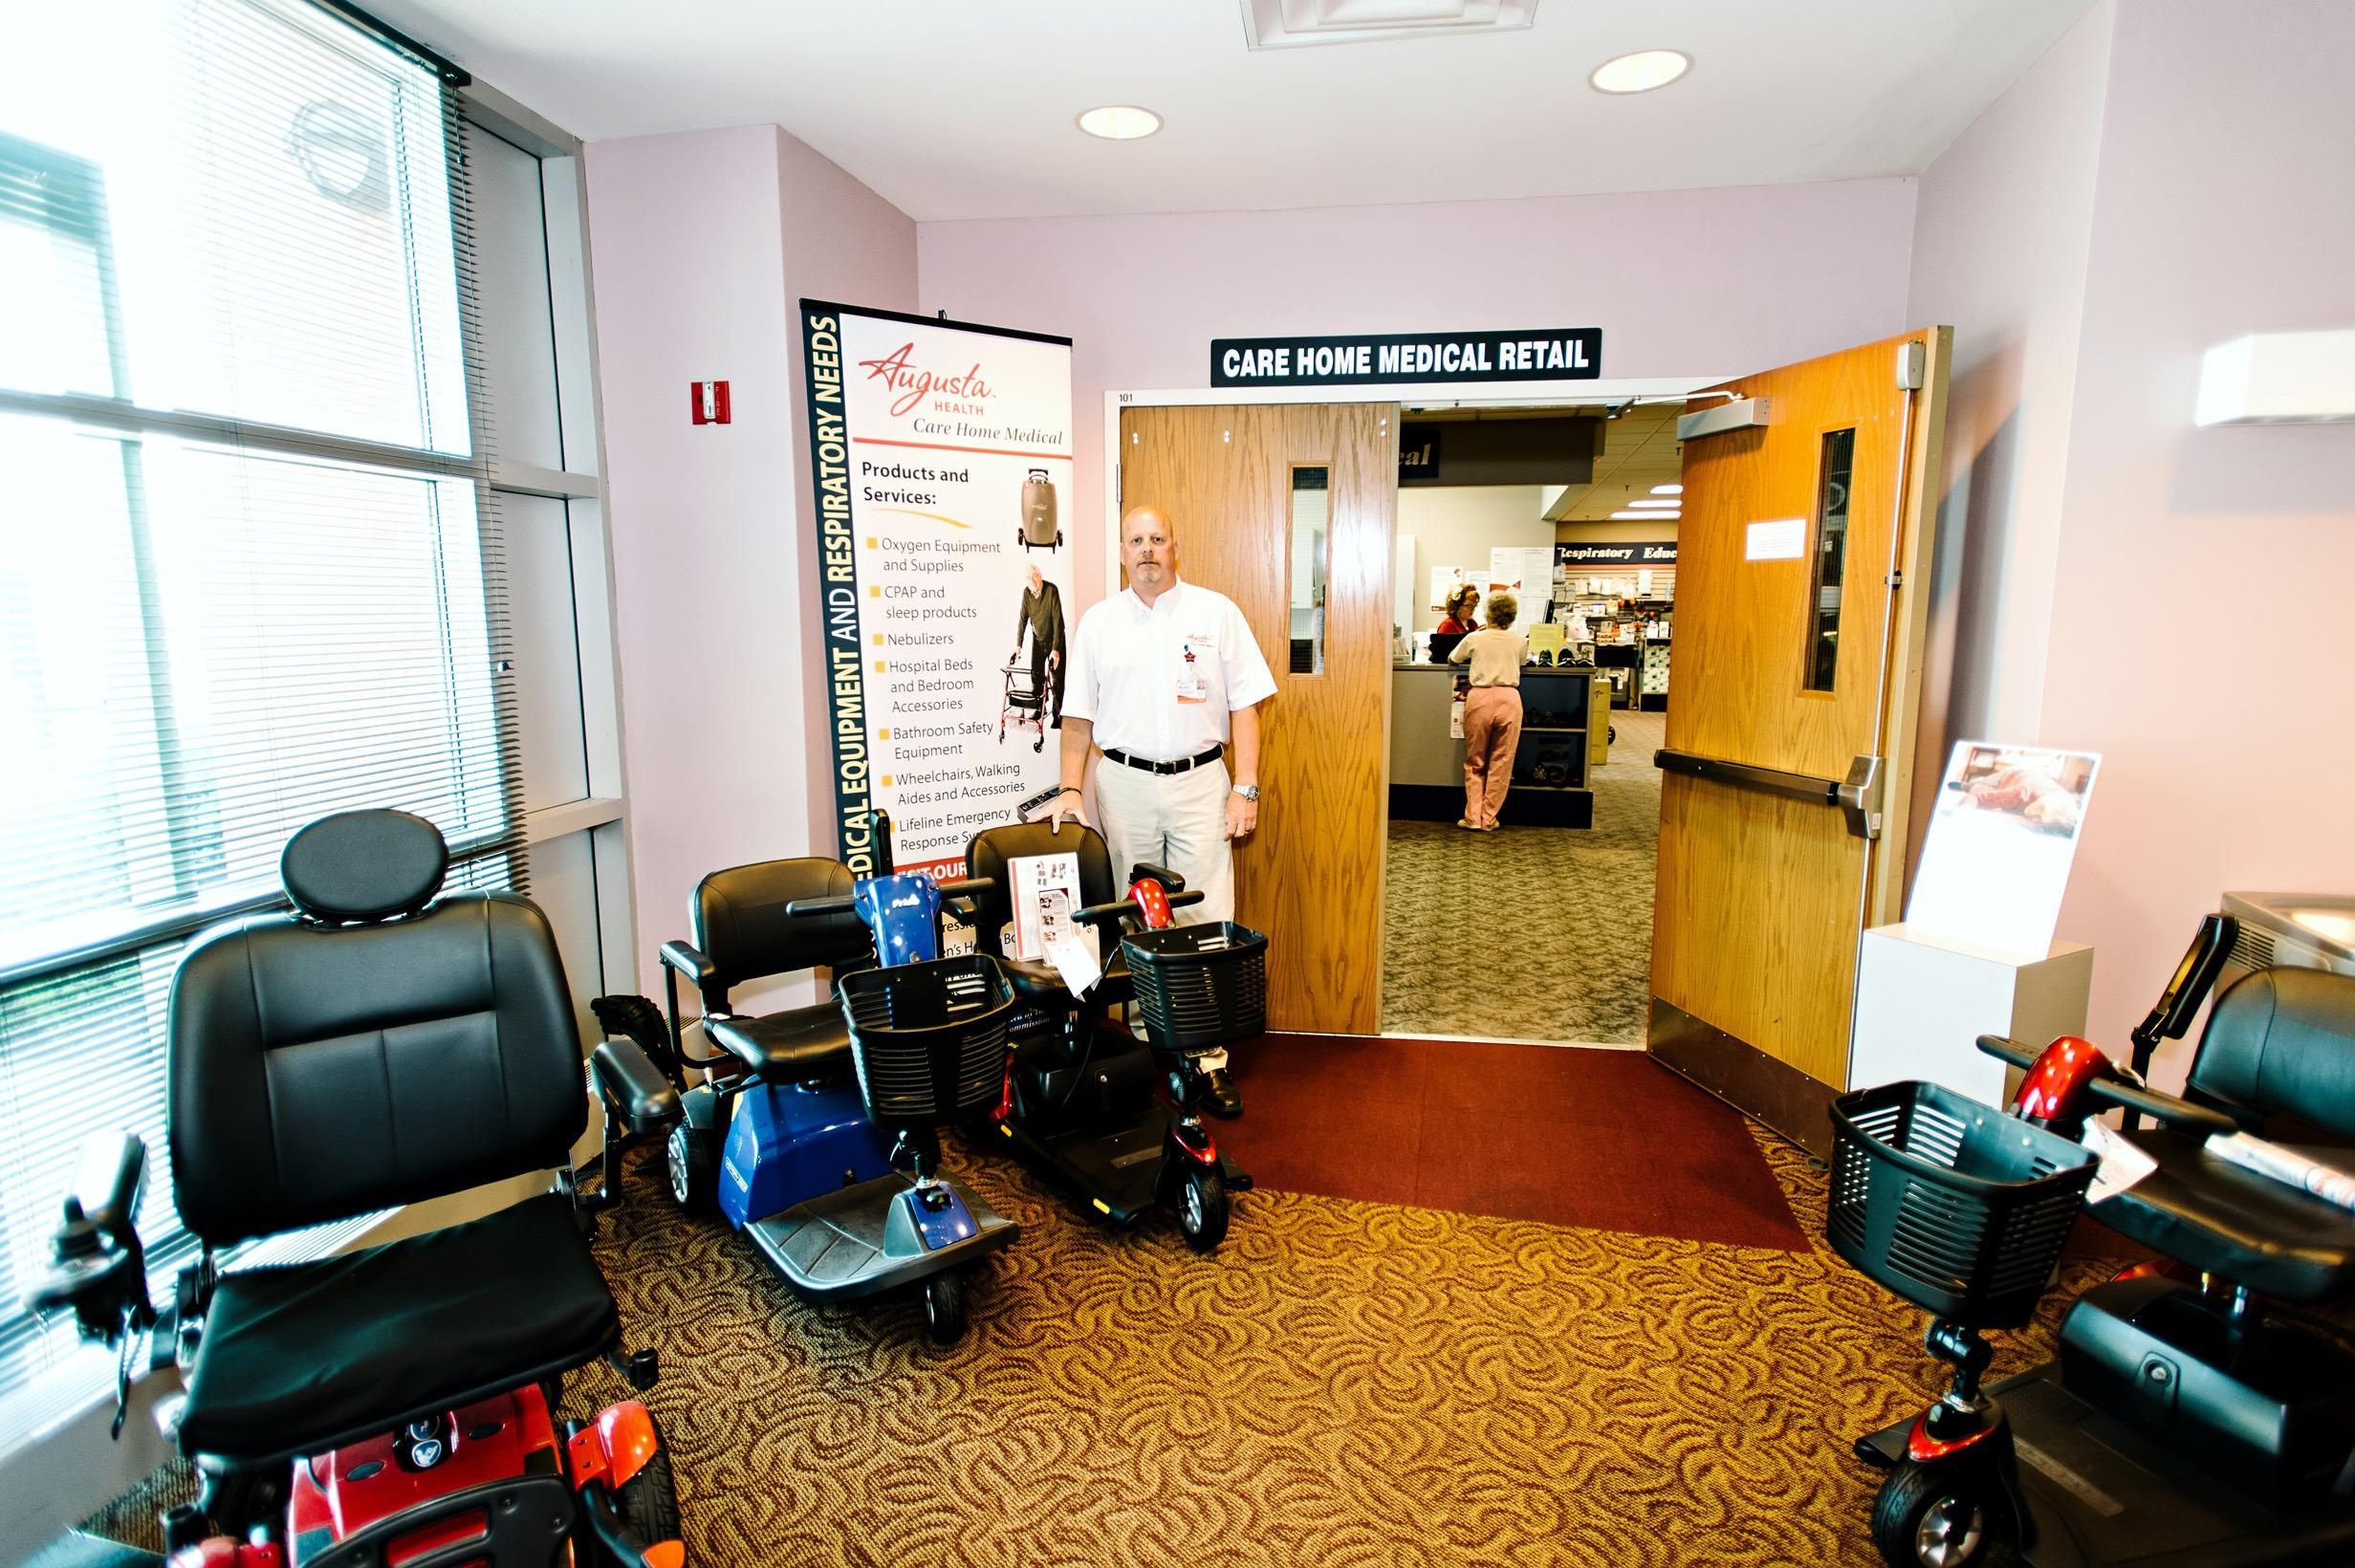 Augusta Health Care Home Medical image 0